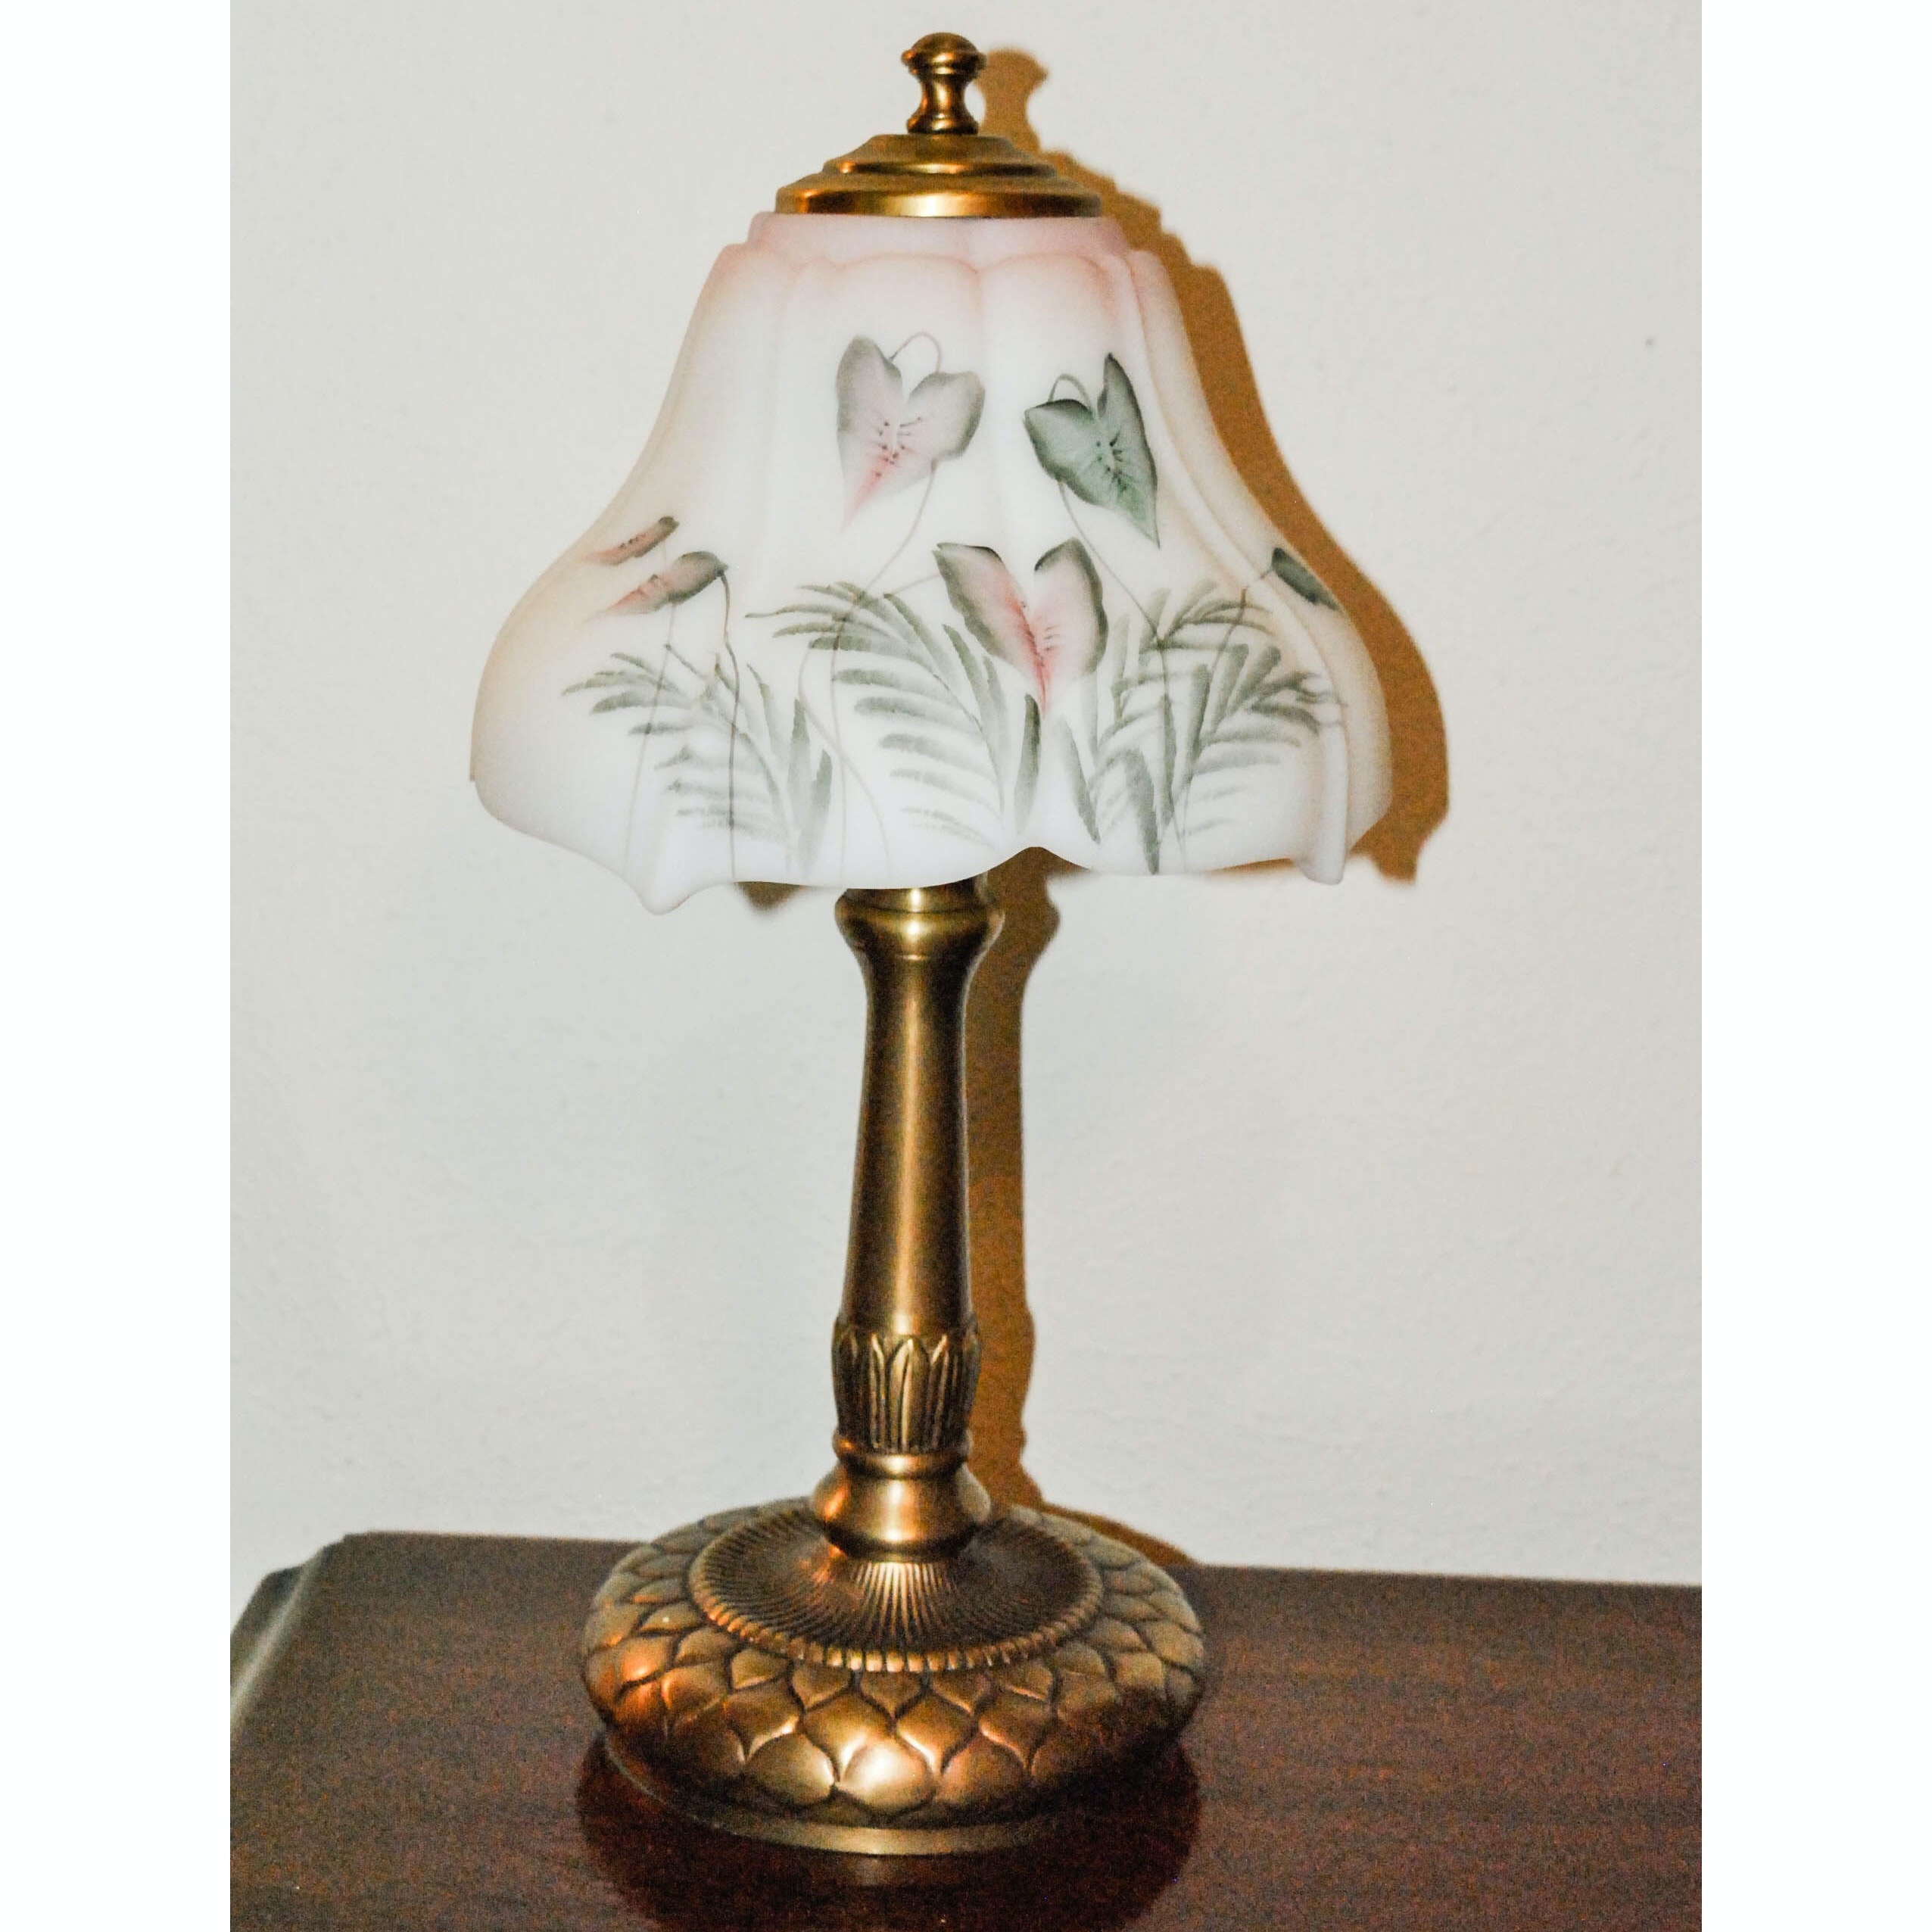 Gold Tone Metal Table Lamp With Painted Glass Shade